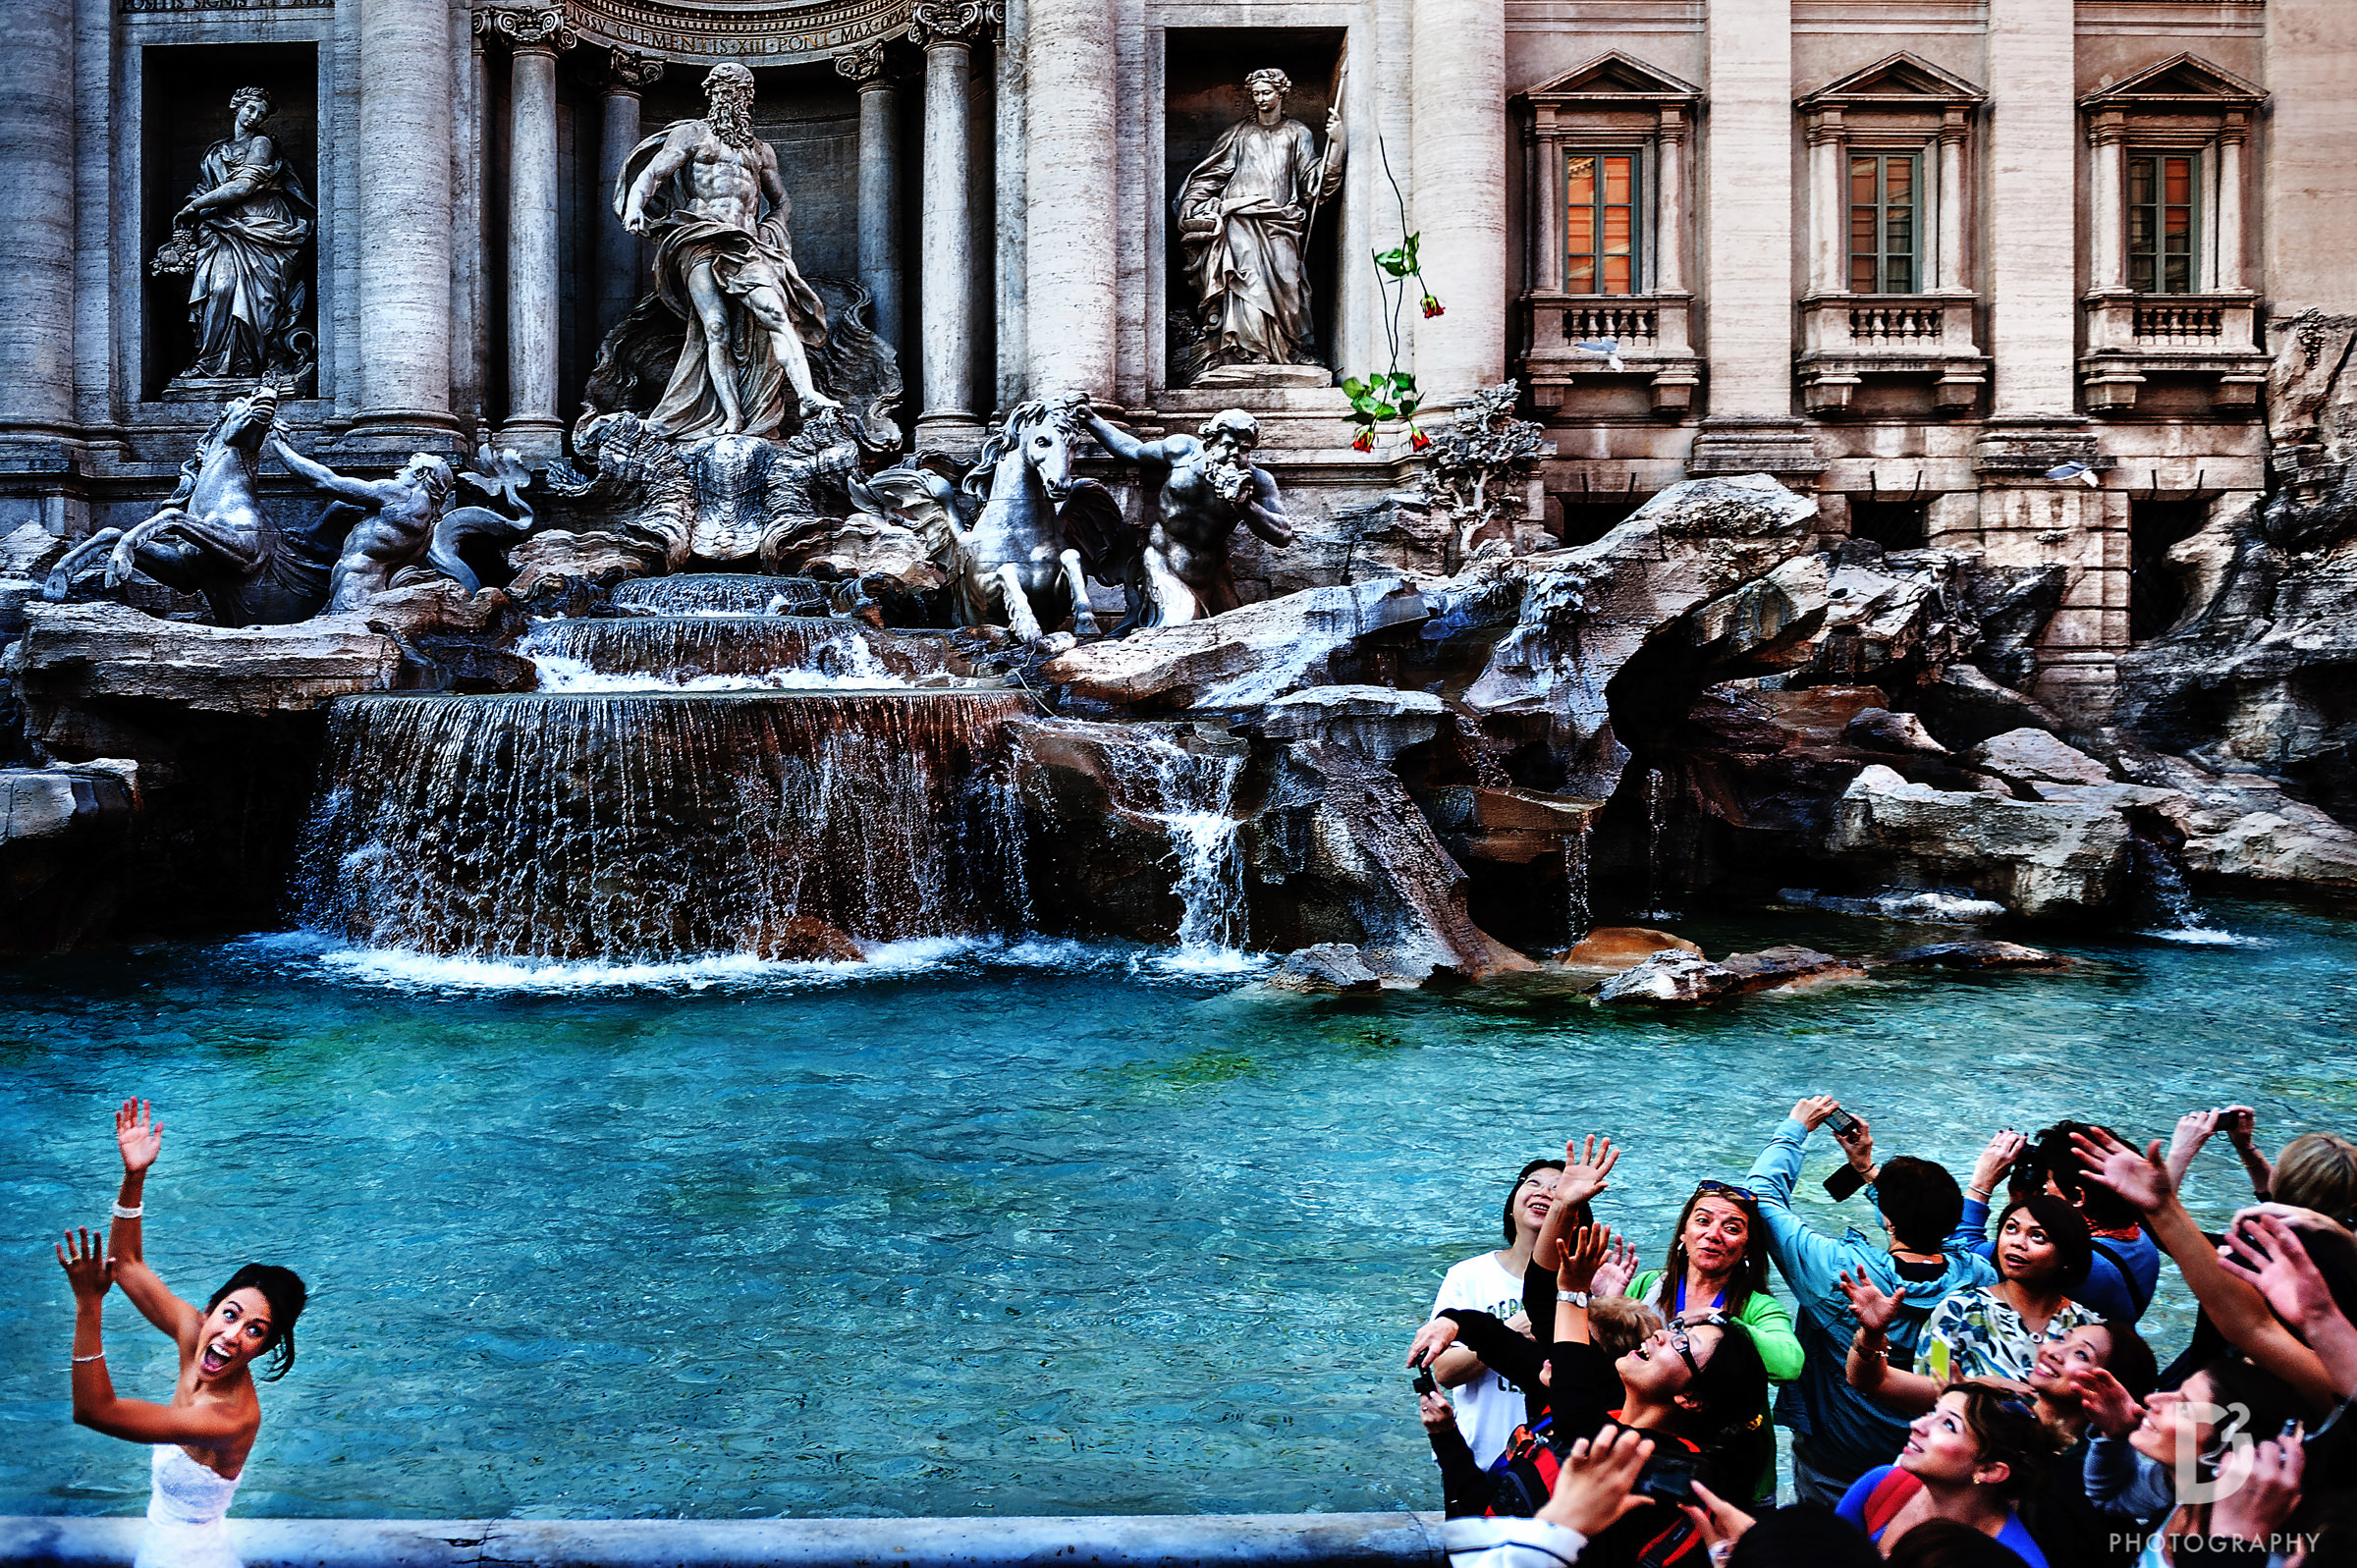 Bride throwing her bouquet to the crowd at the Trevi Fountain - D2 Photography